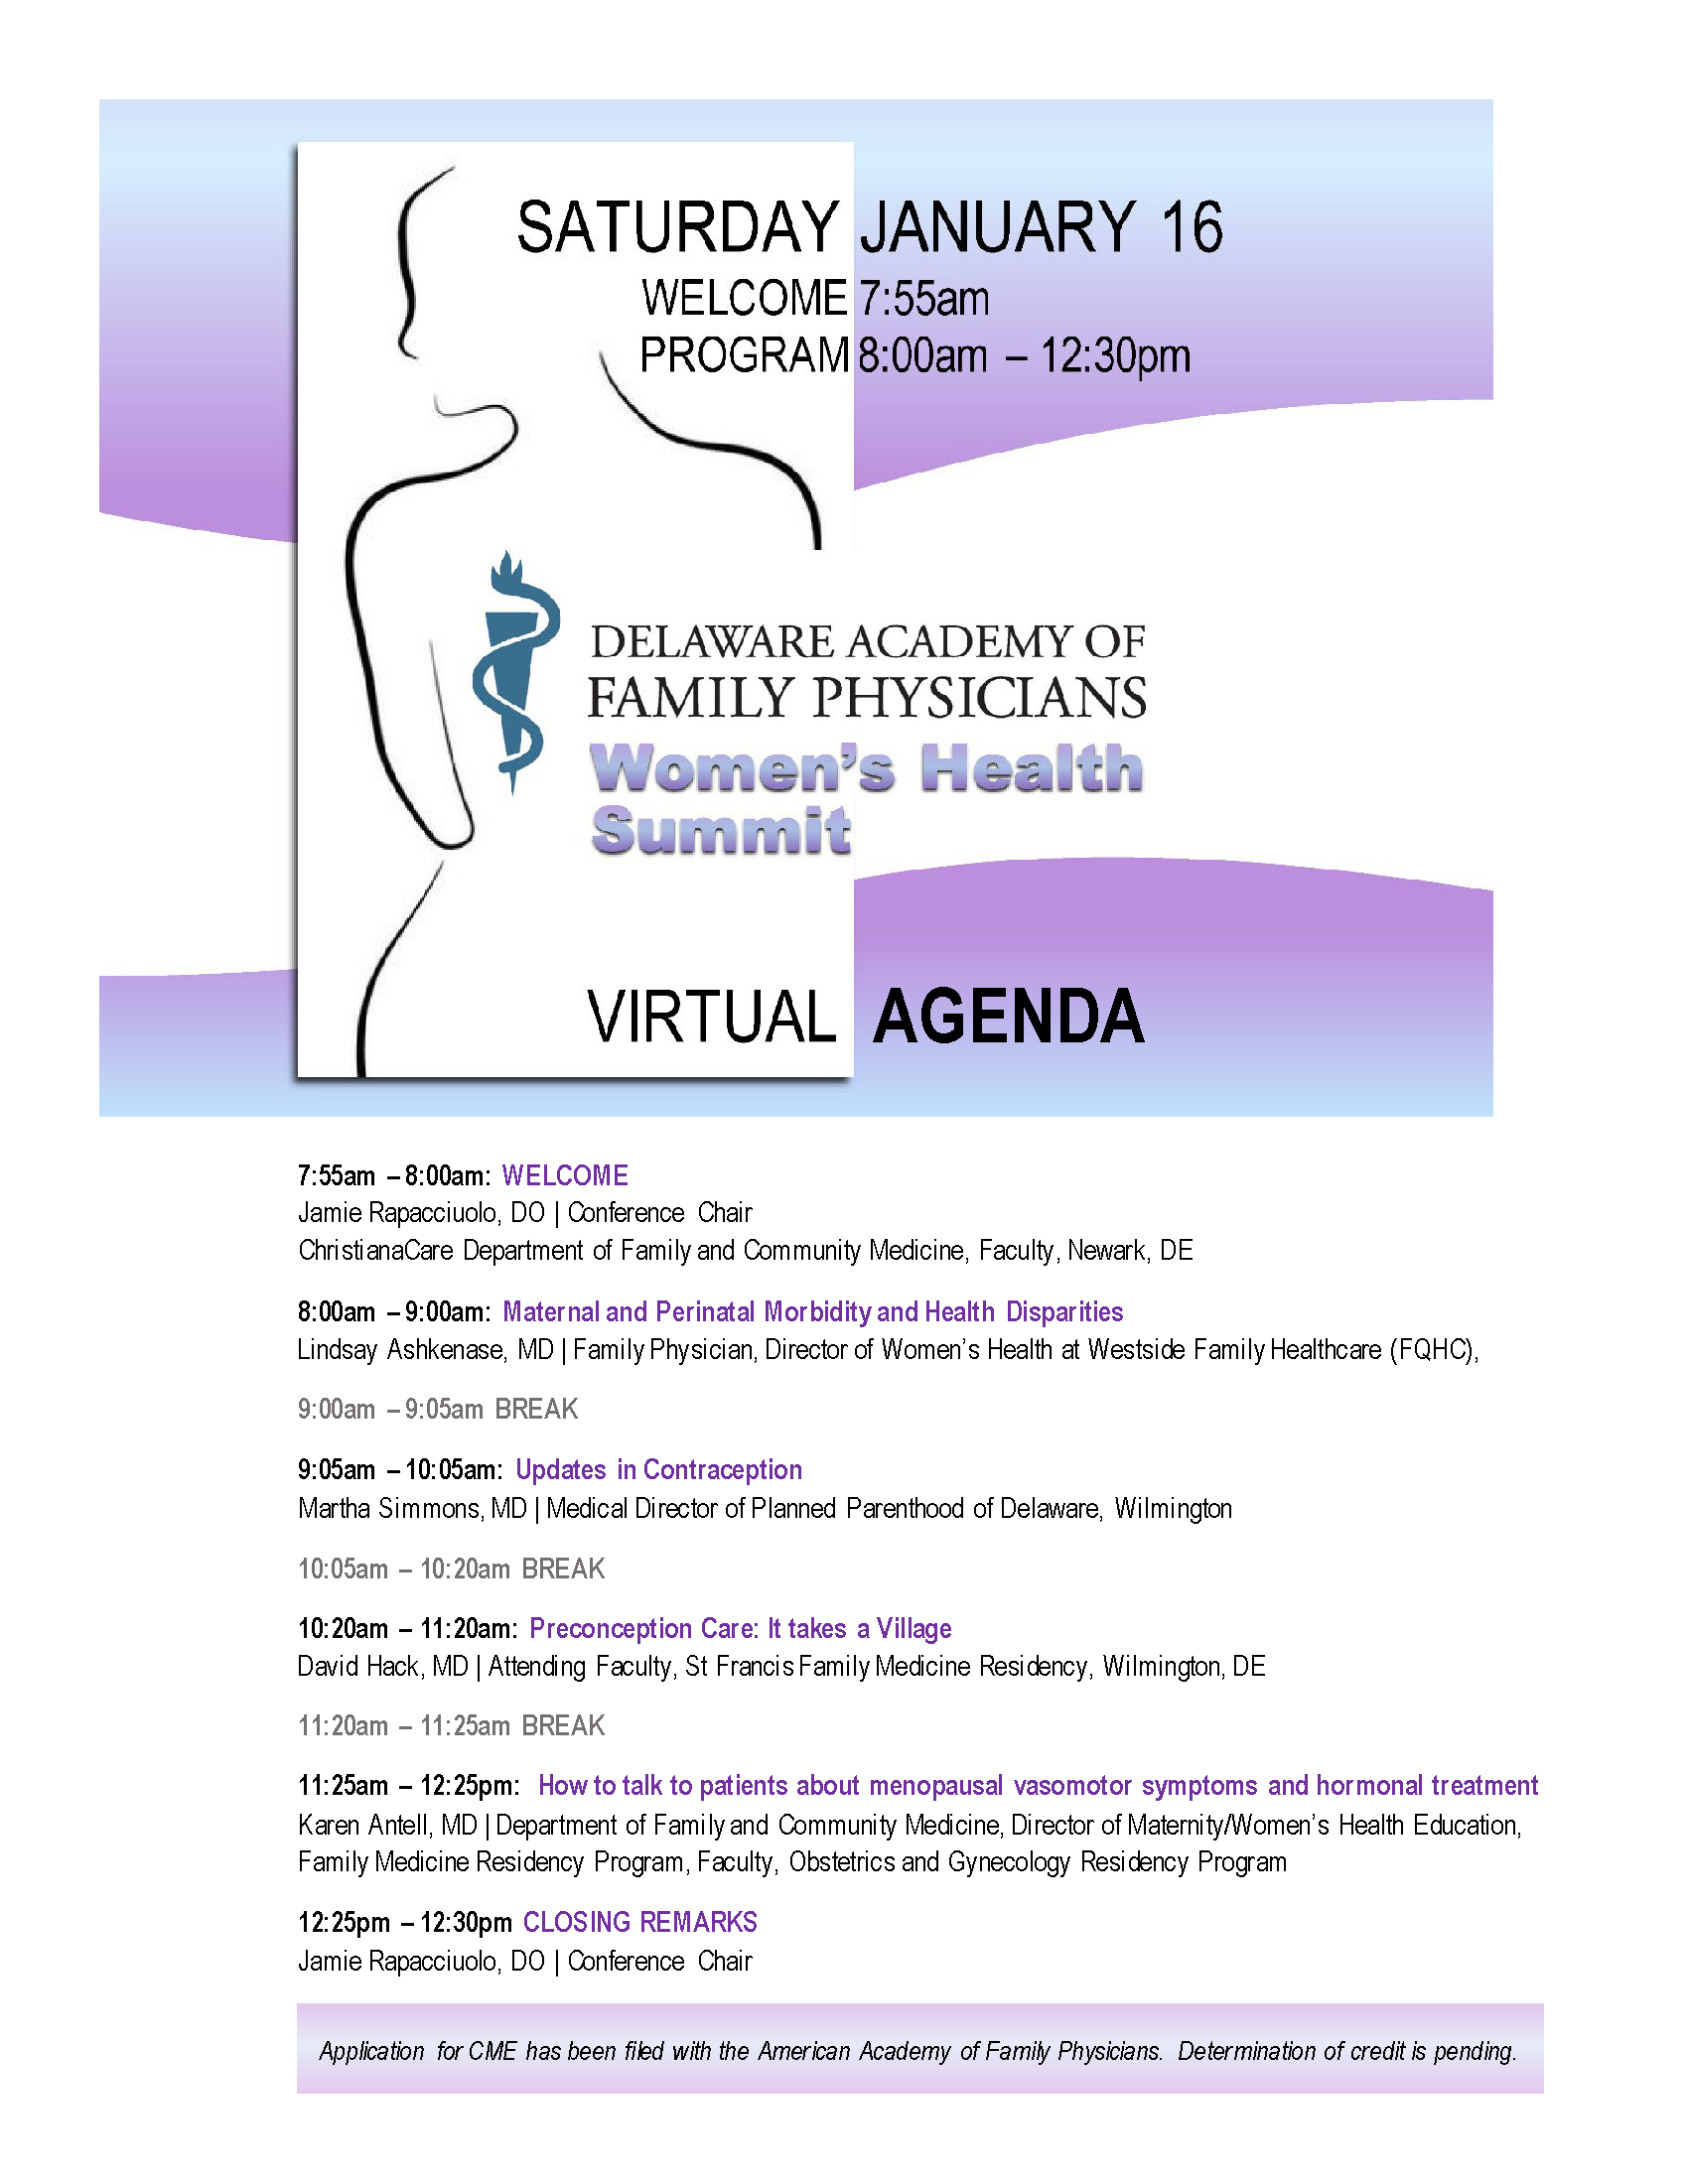 CLICK TO VIEW LARGER VERSION OF THIS AGENDA